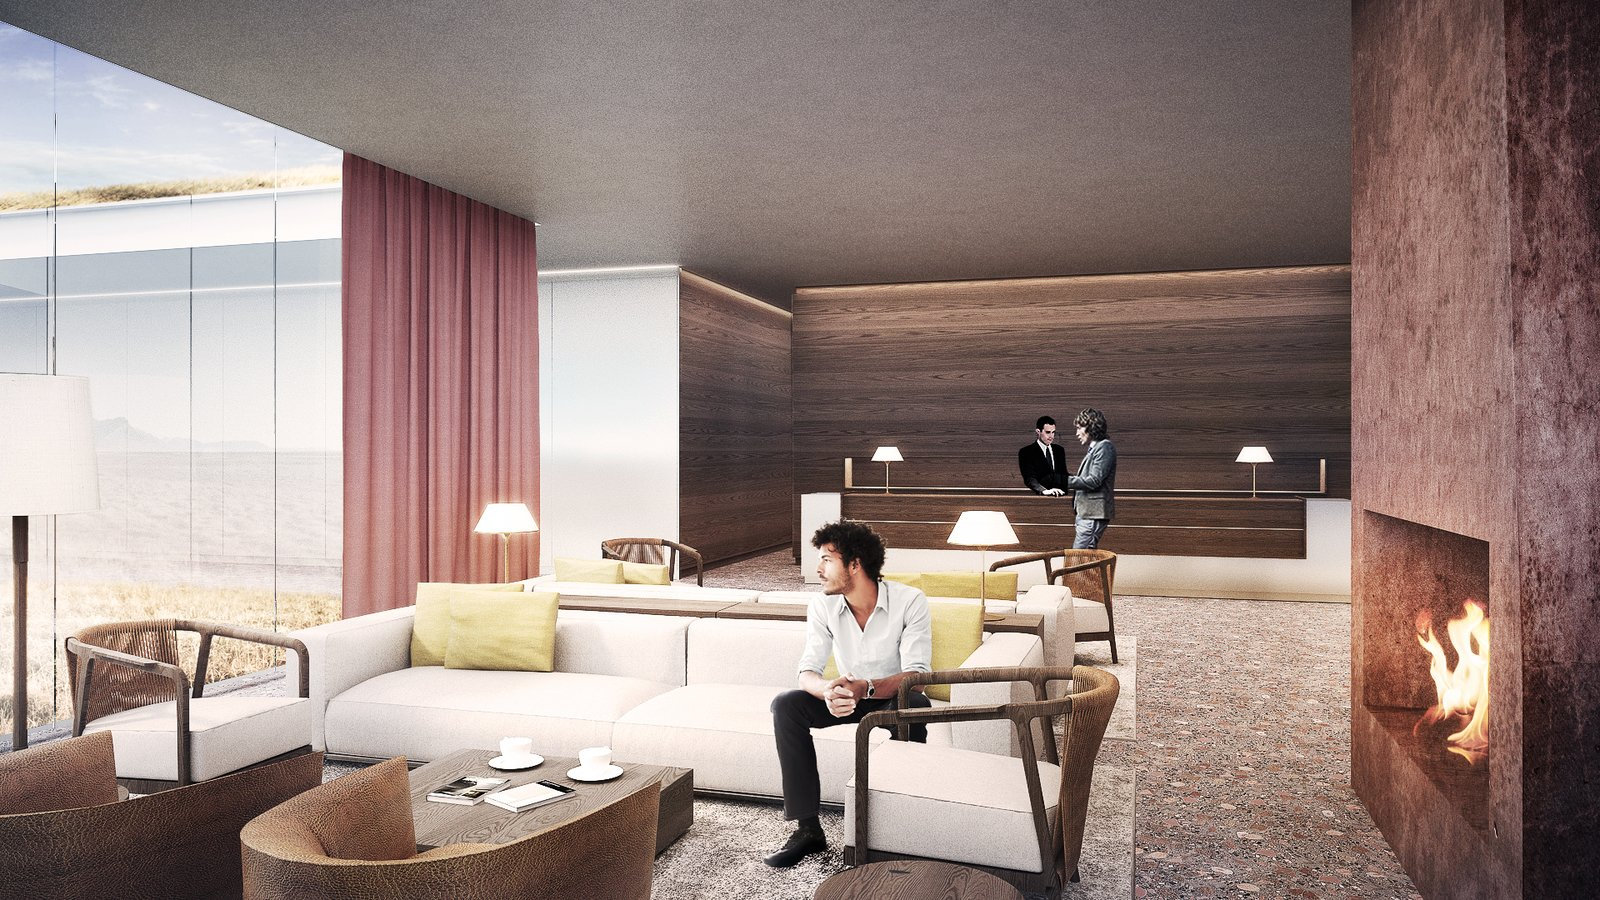 Living Room, Table Lighting, Sofa, Standard Layout Fireplace, Floor Lighting, Coffee Tables, and Chair lobby  Photo 4 of 18 in A Proposed Icelandic Resort Celebrates Wellness and its Magical Surroundings